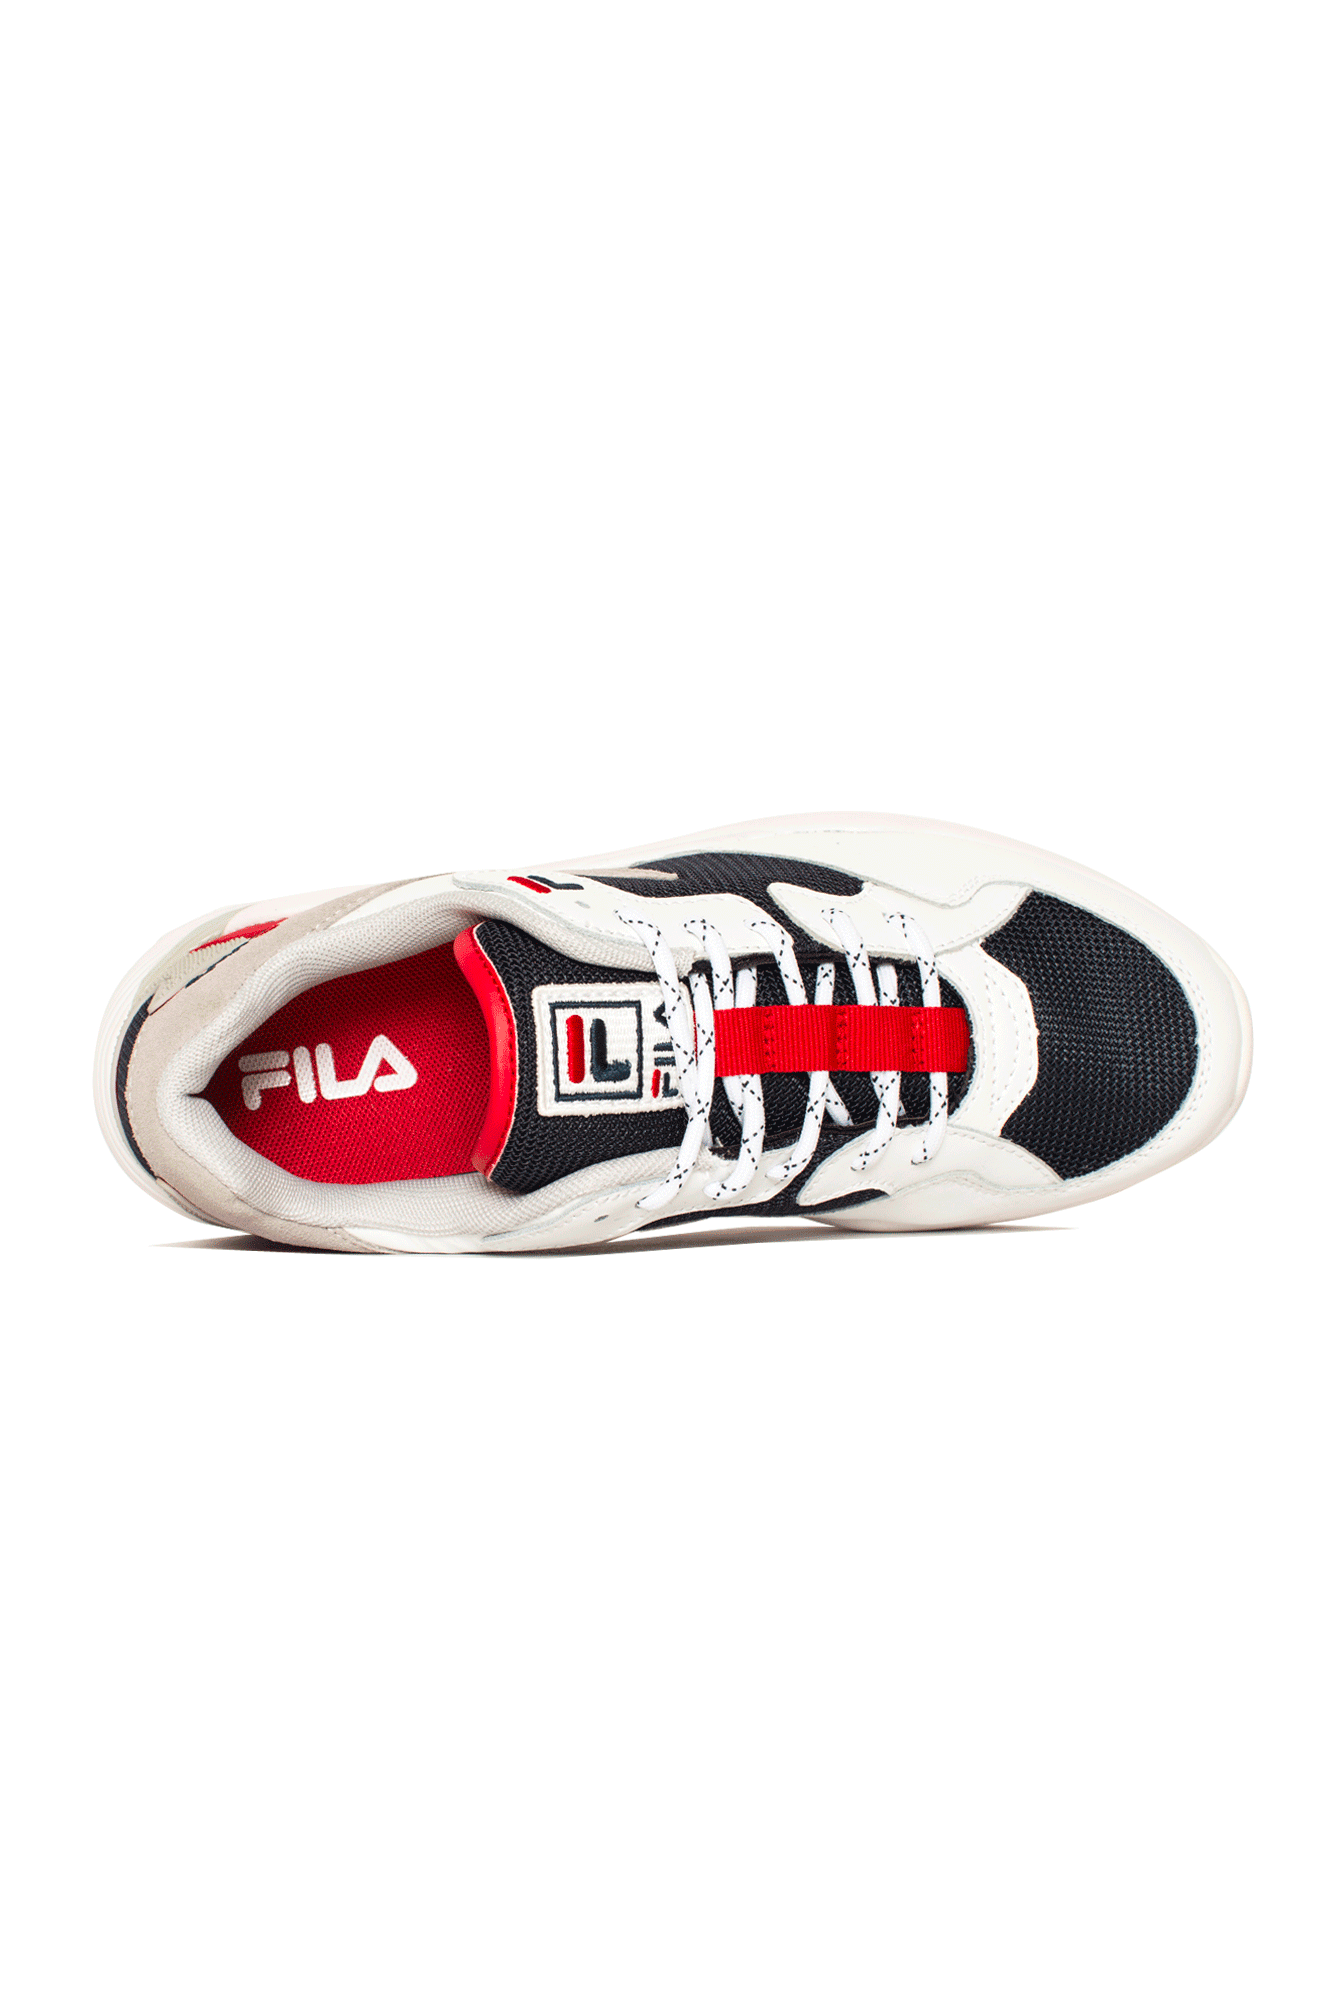 Fila Sneakers Vault CMR Jogger CB Low White 1010588#000#01M#7,5 - One Block Down